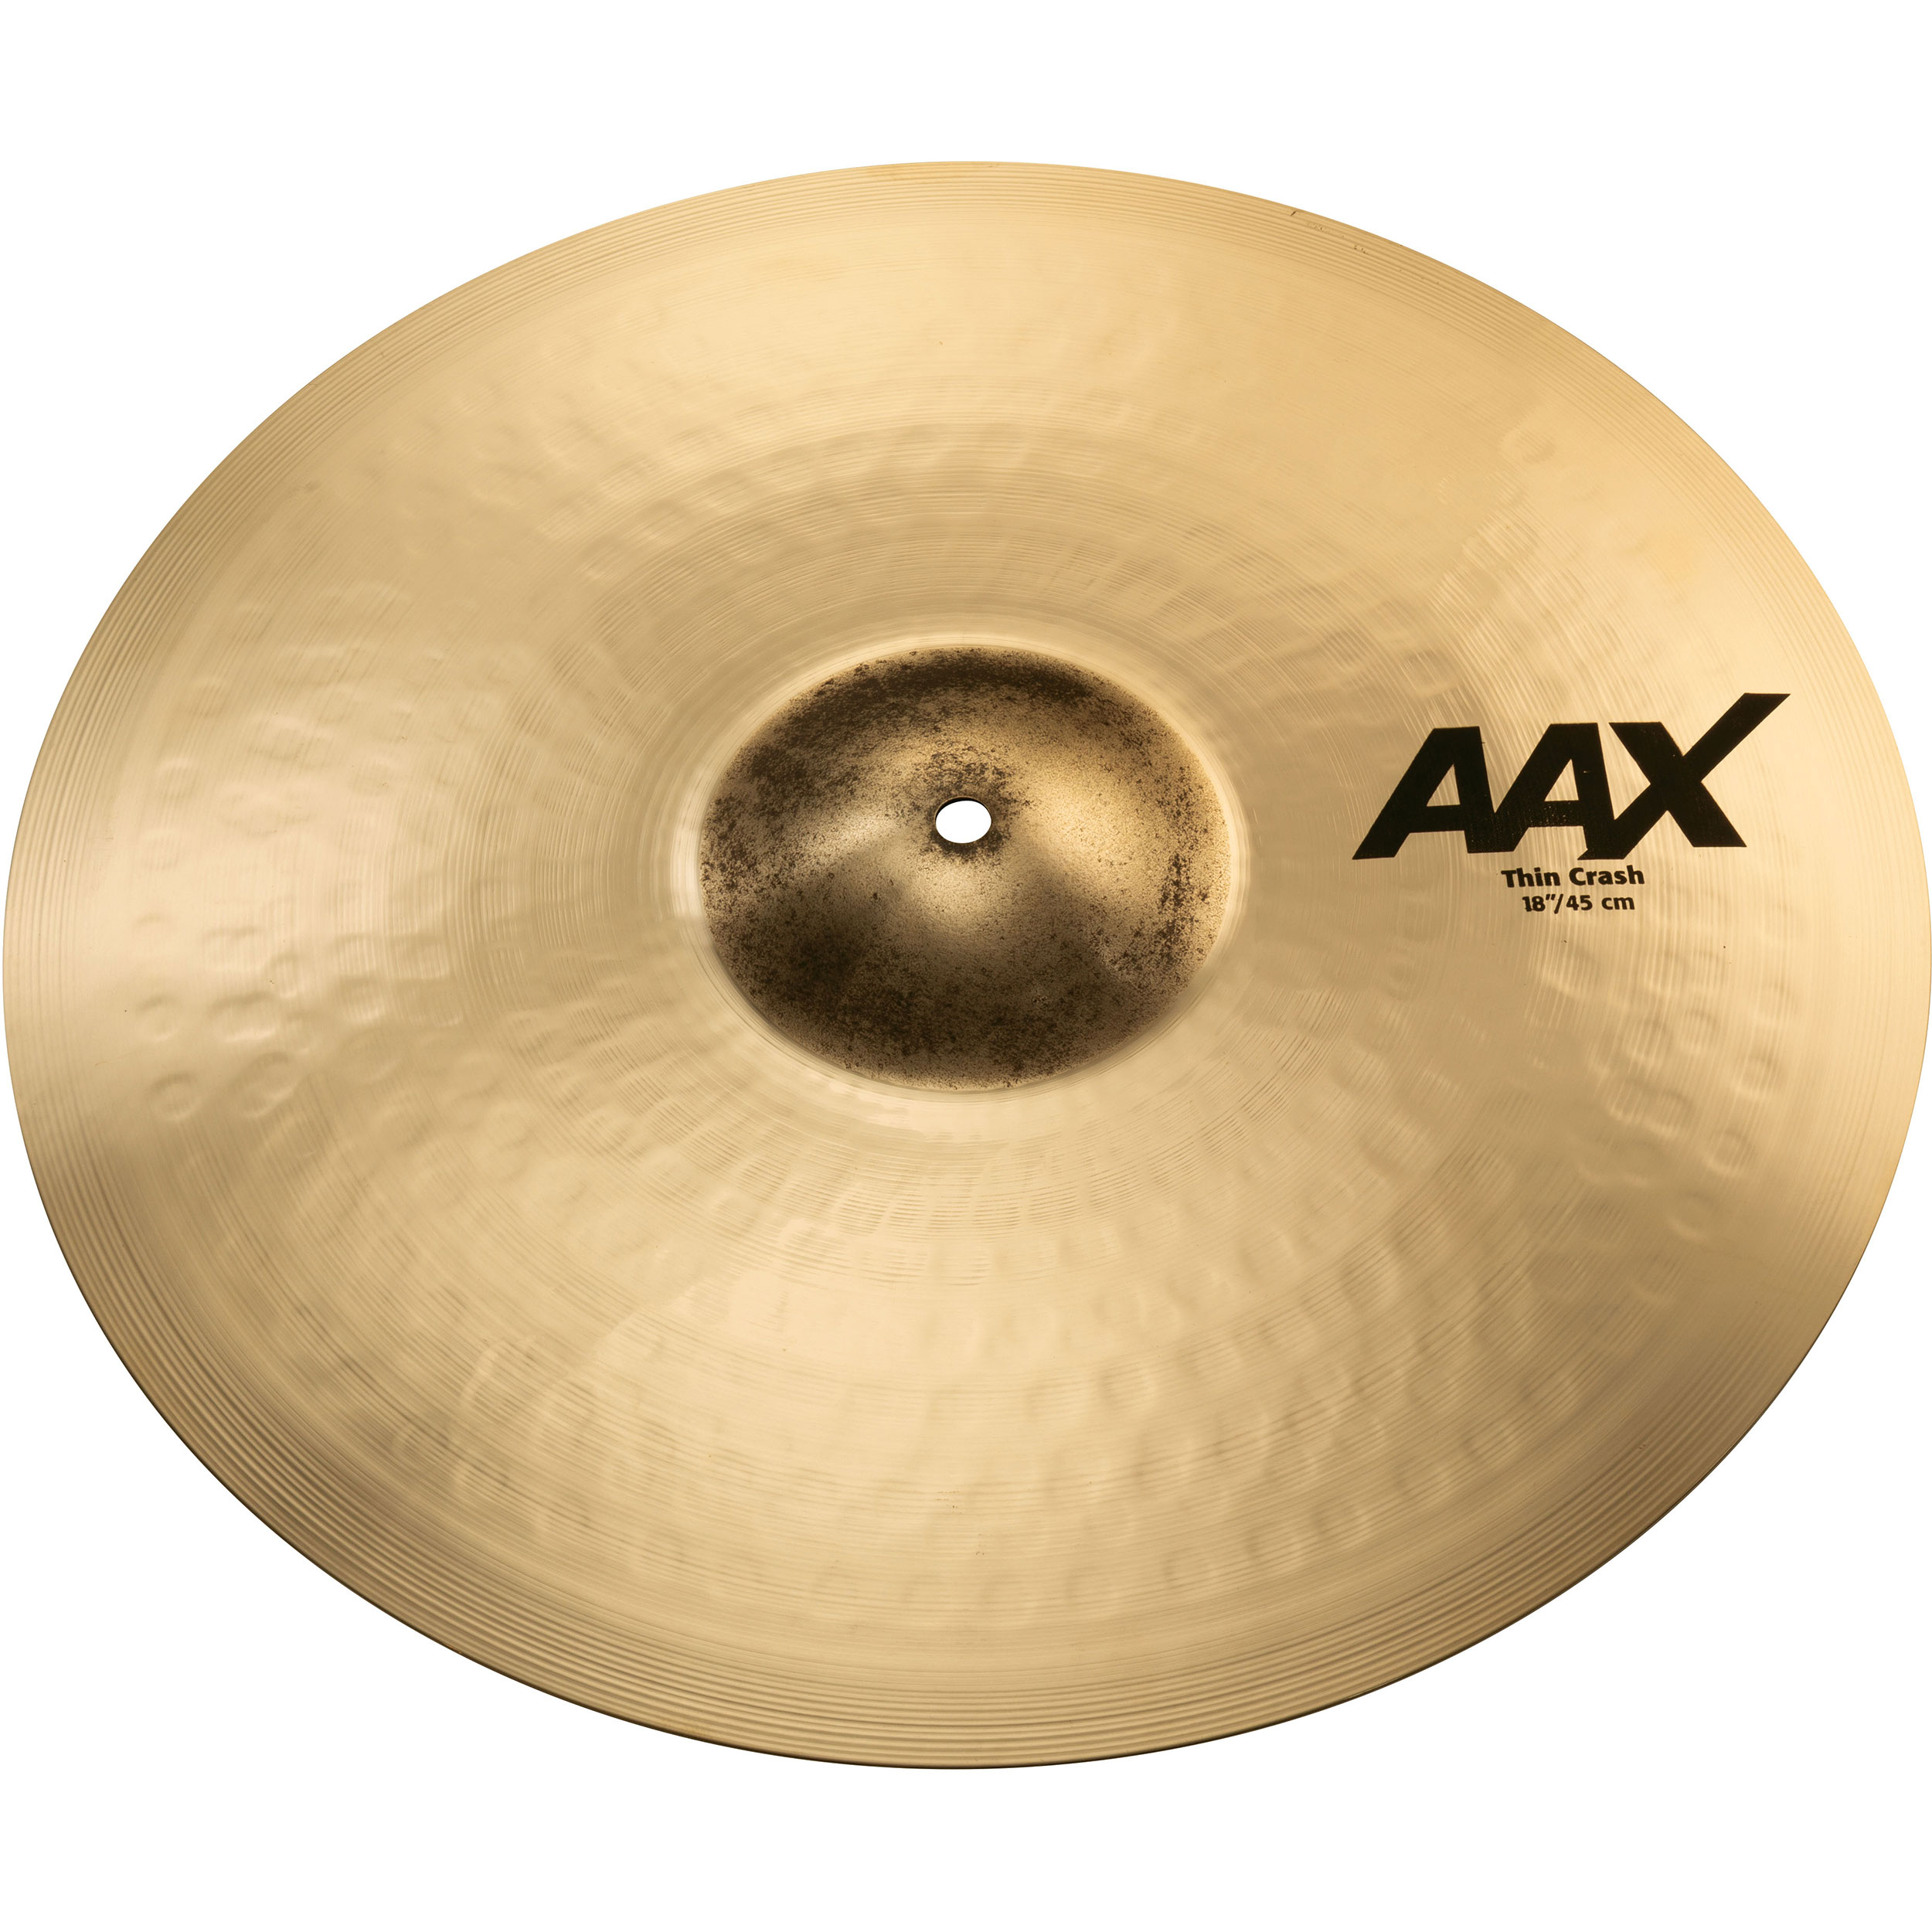 "Sabian 18"" AAX Thin Crash Cymbal"